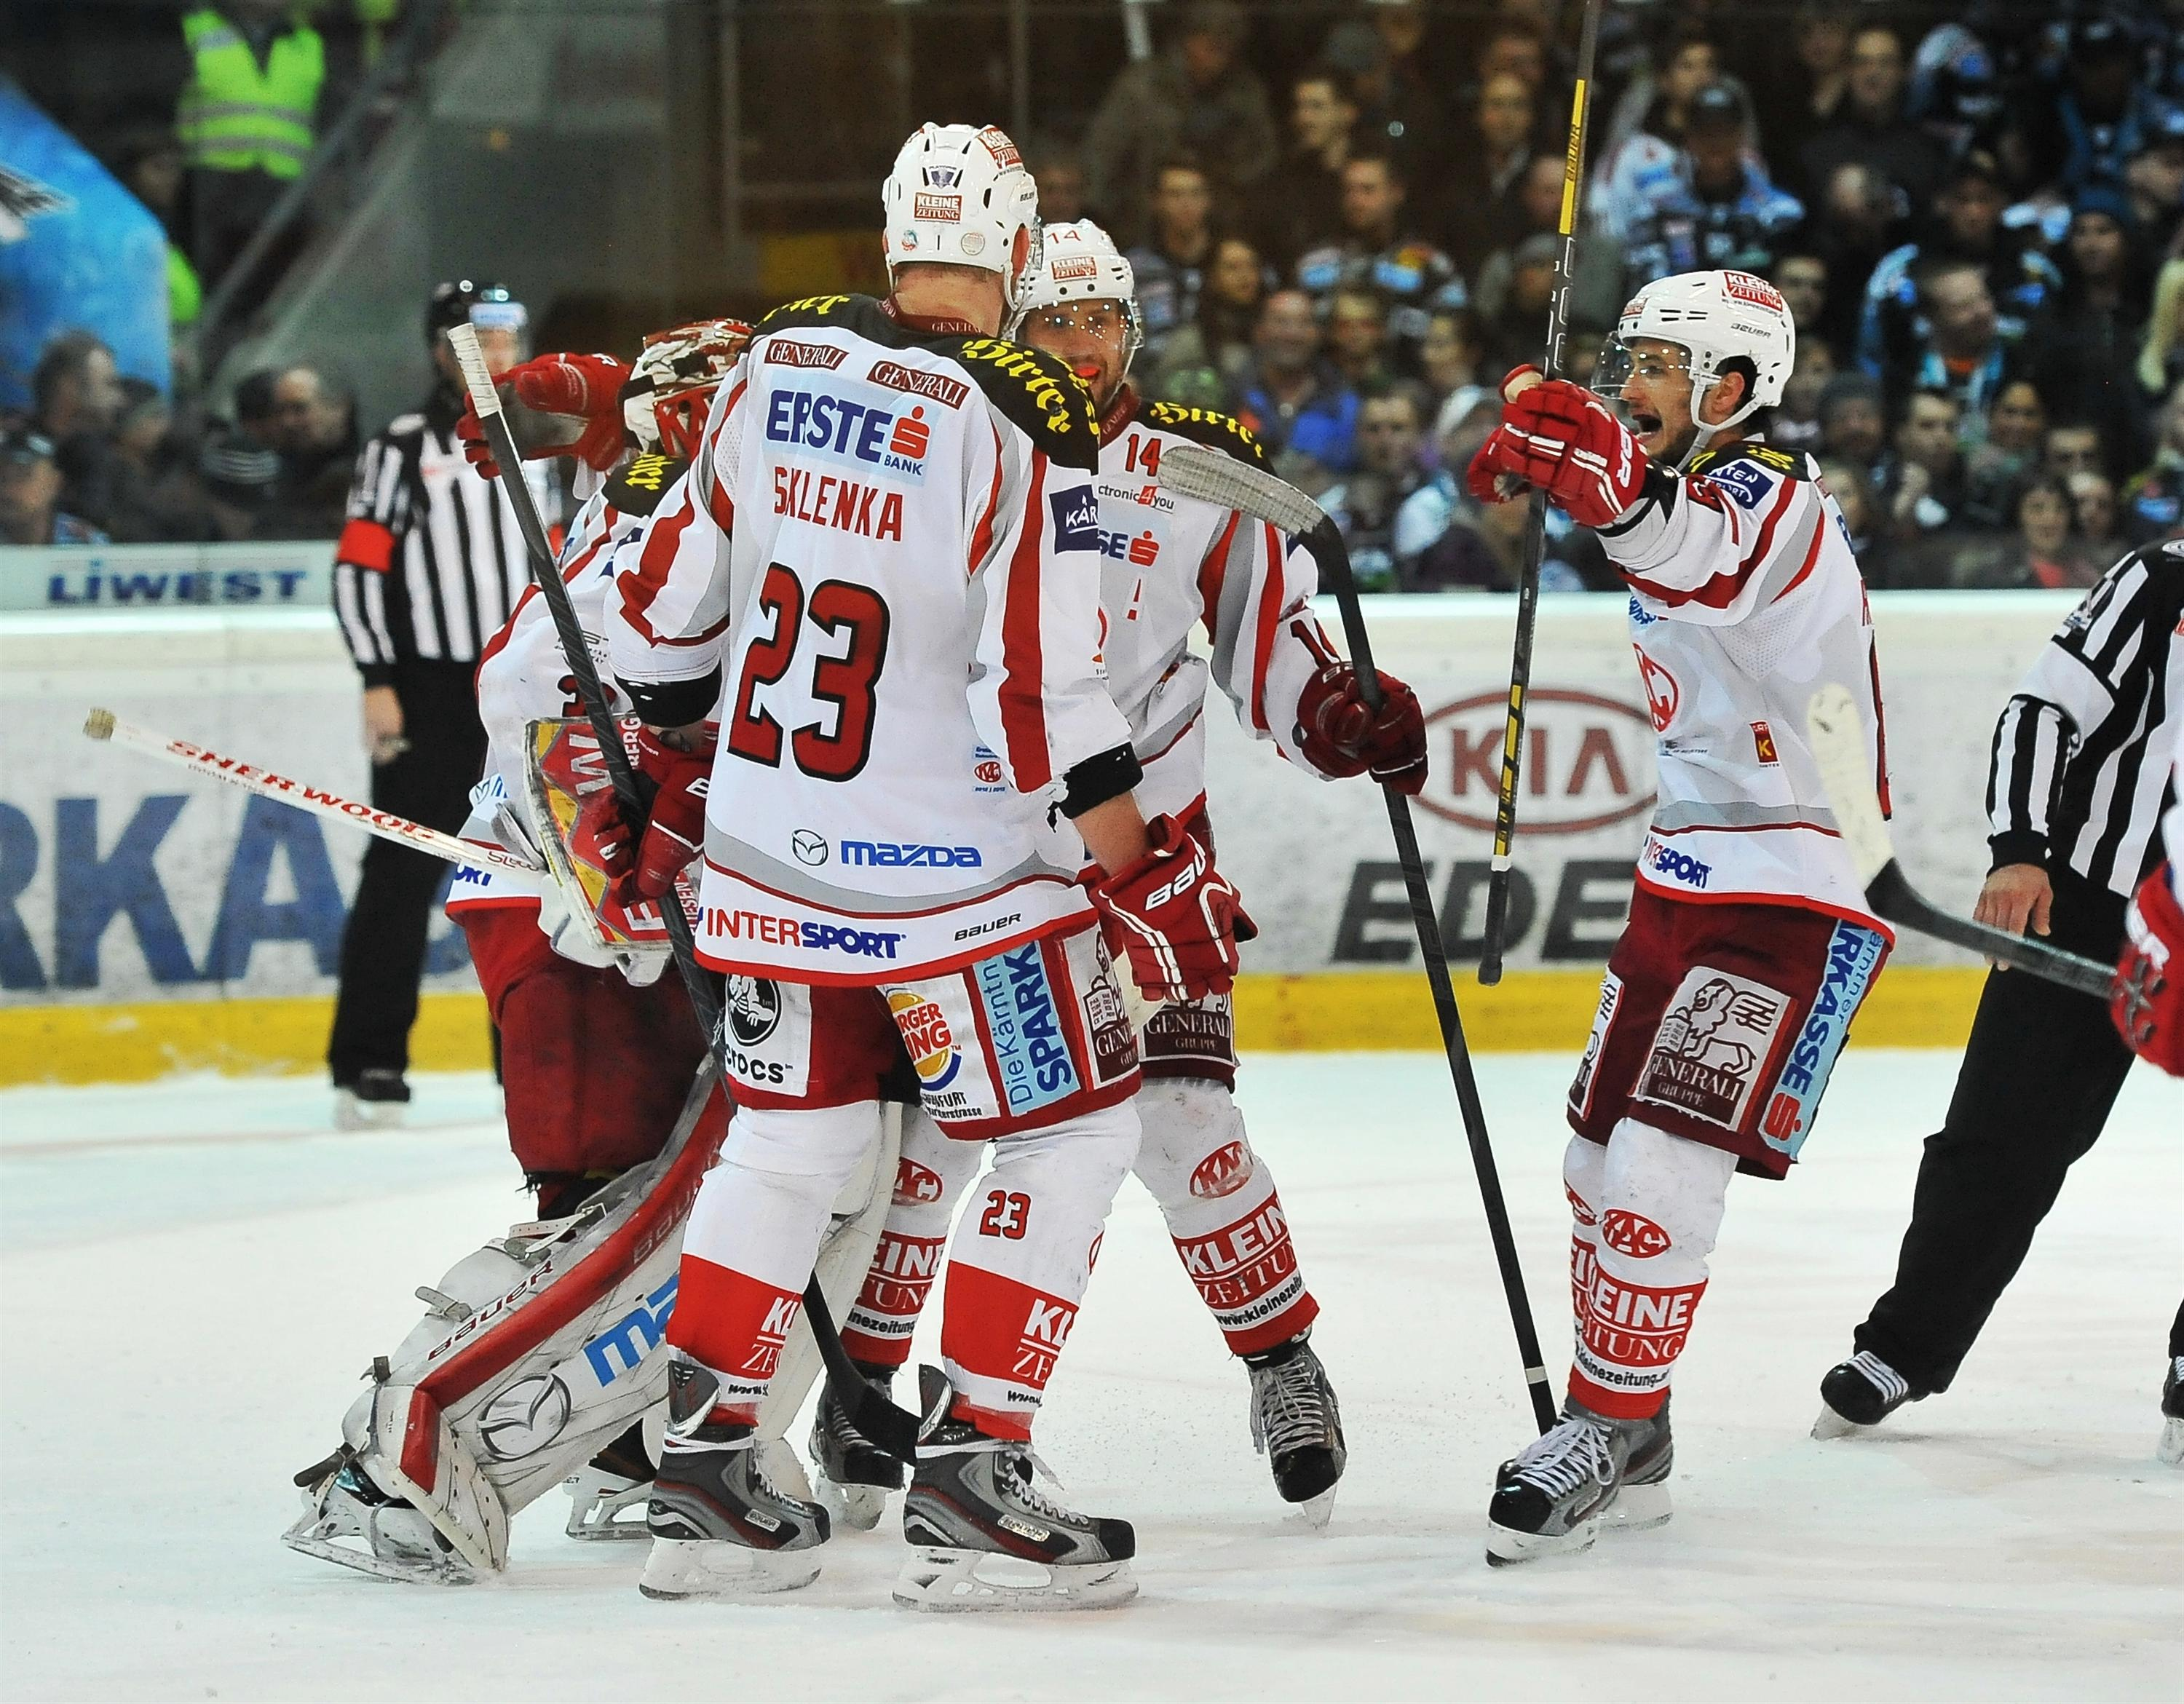 Eishockey Black Wings Linz vs KAC 22.03.2013 – Jubel KAC 1